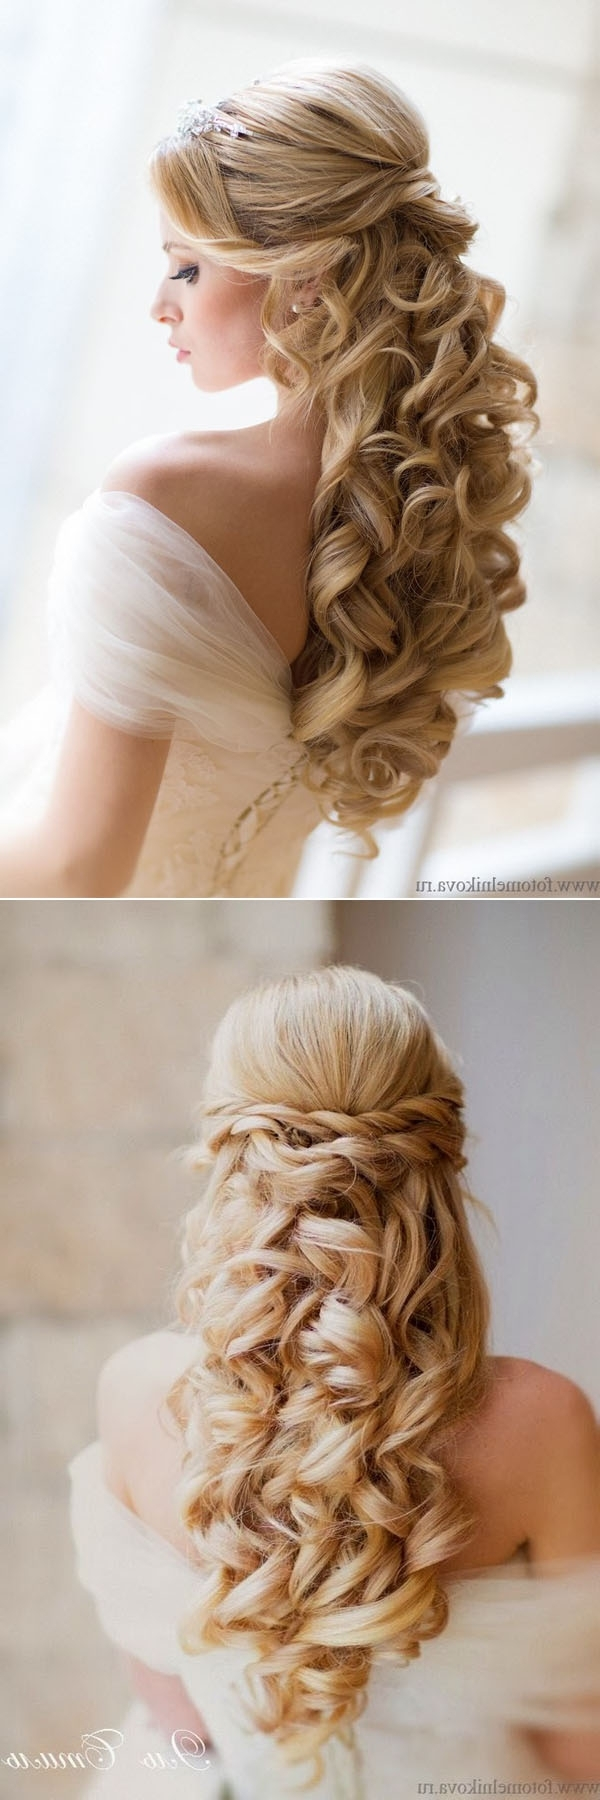 Popular Curls Up Half Down Wedding Hairstyles For 20 Awesome Half Up Half Down Wedding Hairstyle Ideas (View 10 of 15)